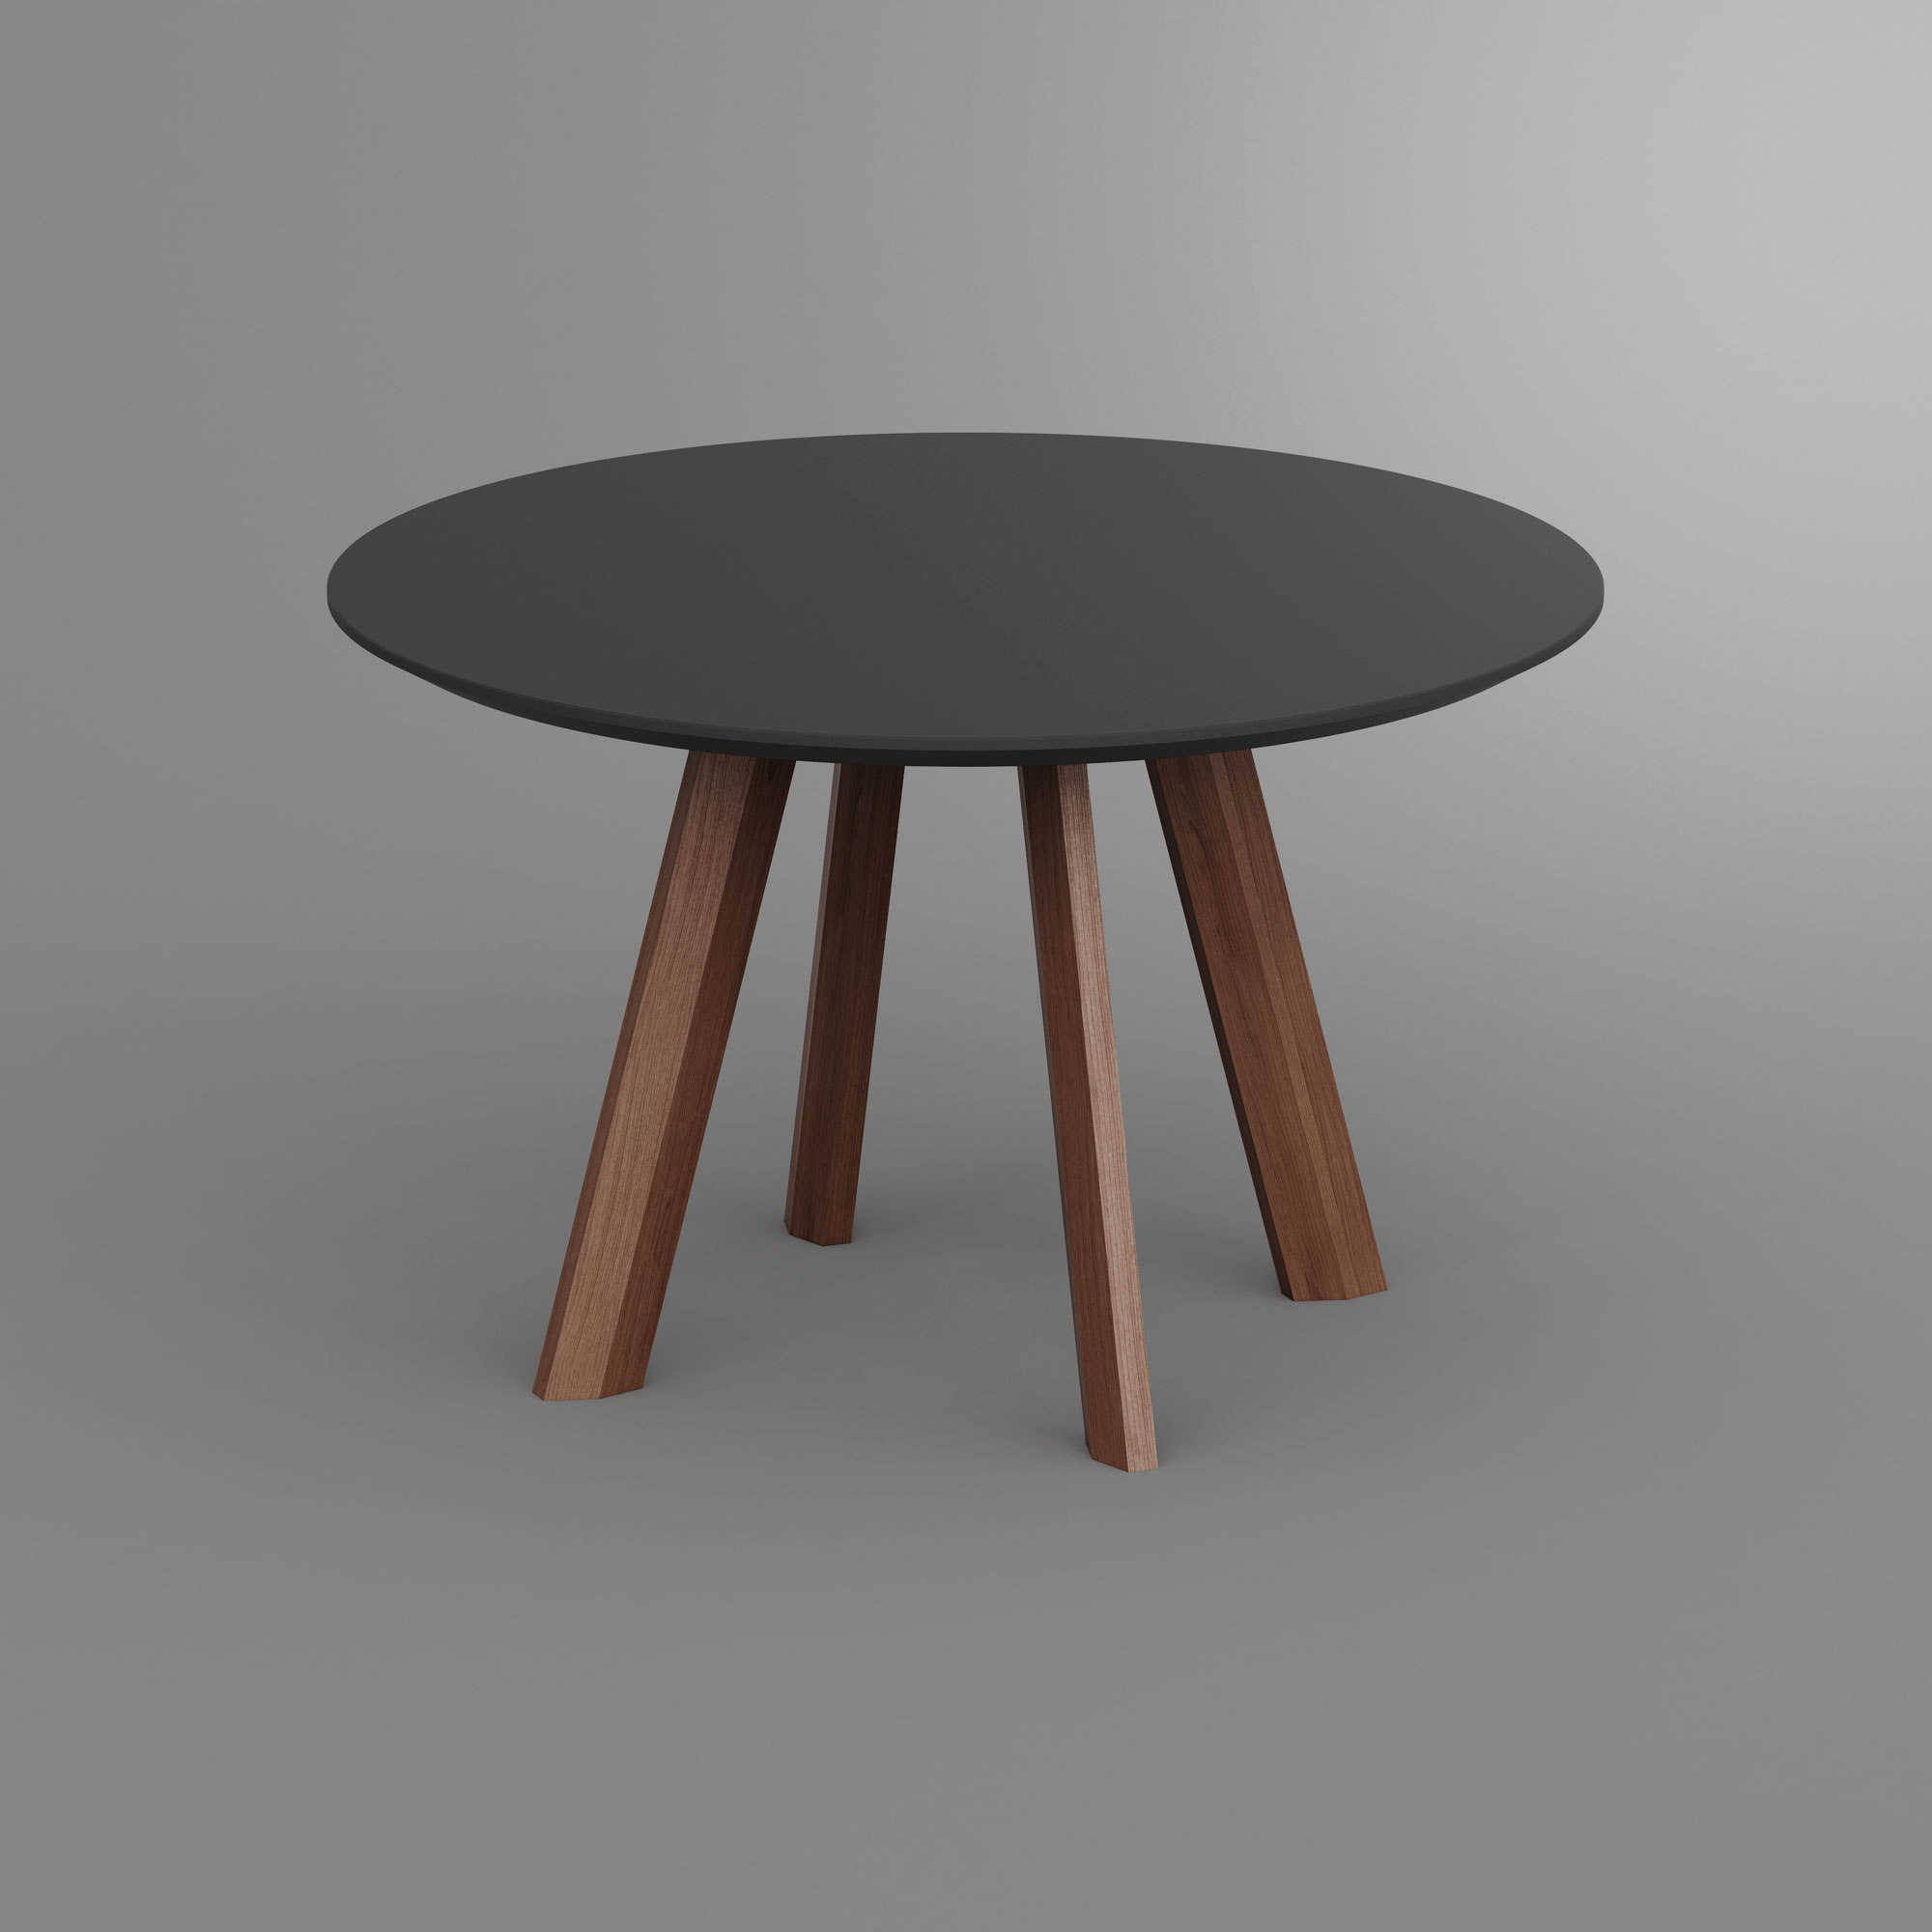 Round Linoleum Table RHOMBI ROUND LINO rhombi1 custom made in solid wood by vitamin design